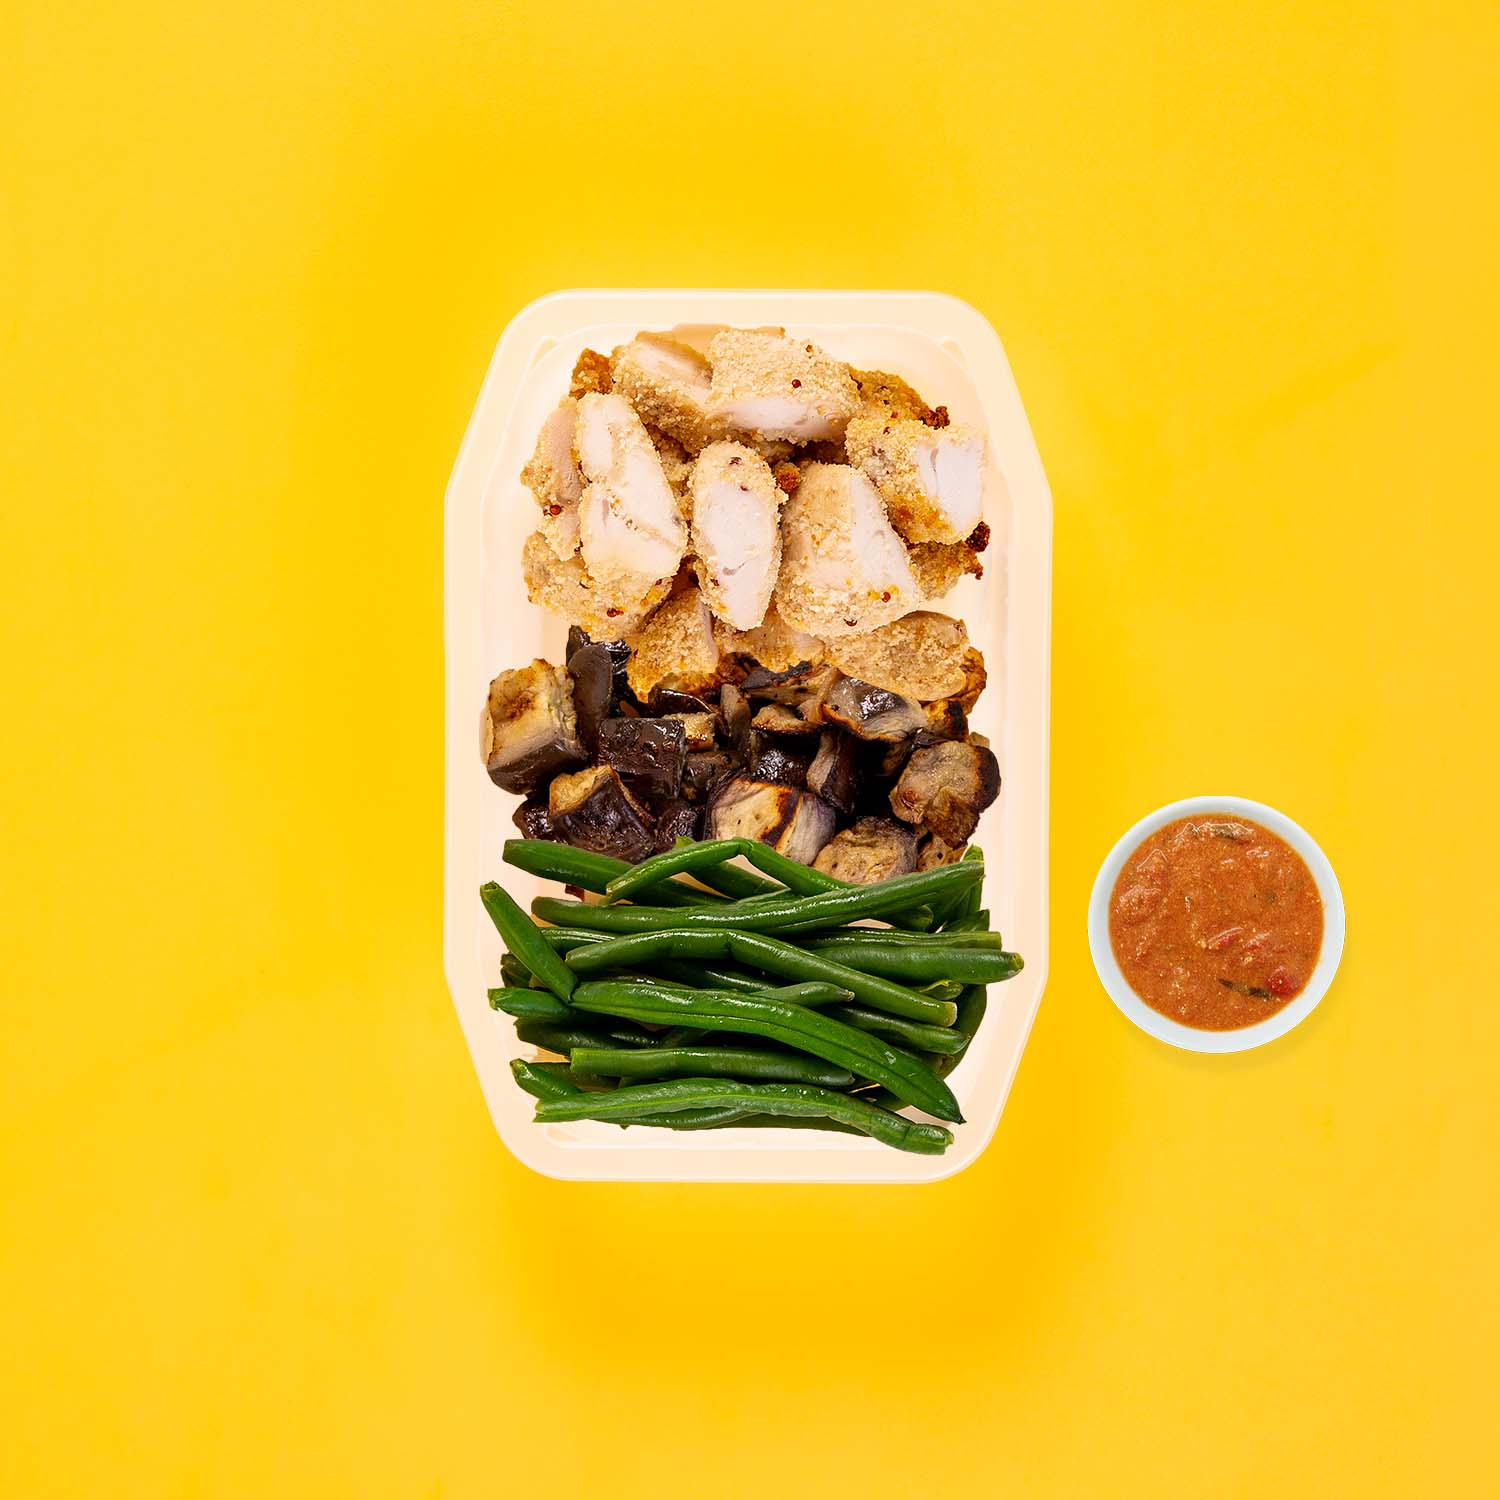 150g Quinoa Chicken Tenders 150g Miso Eggplant 50g Green Beans Thai Red Curry